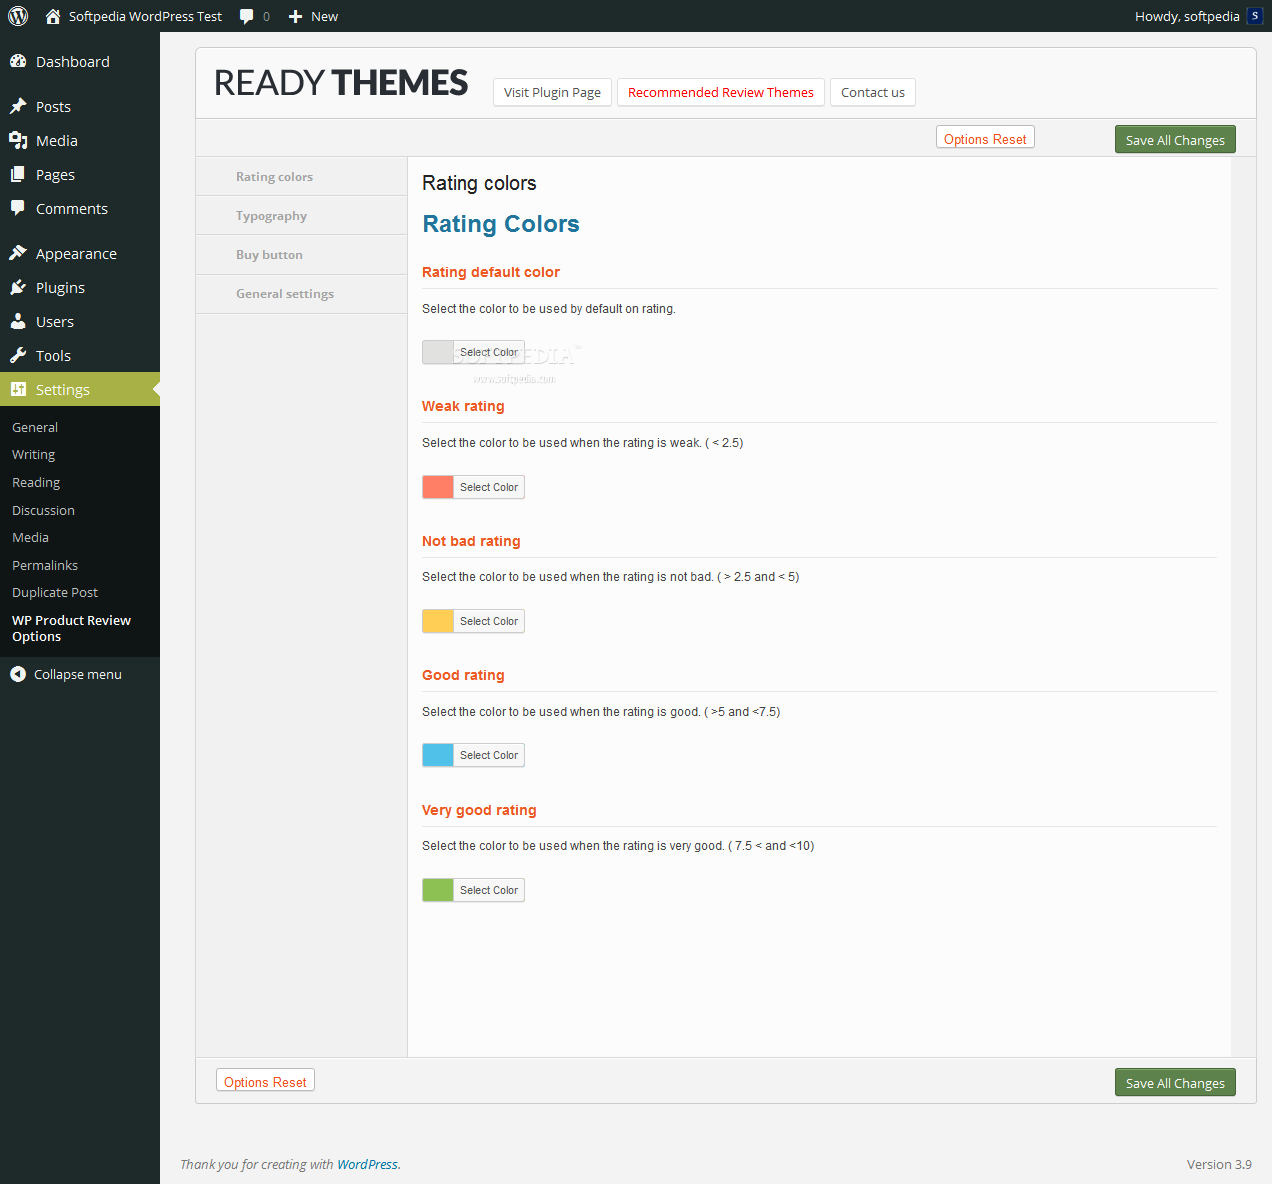 WP Product Review - WP Product Review provides an options panel where admins can customize colors, typography, buttons, and other plugin settings